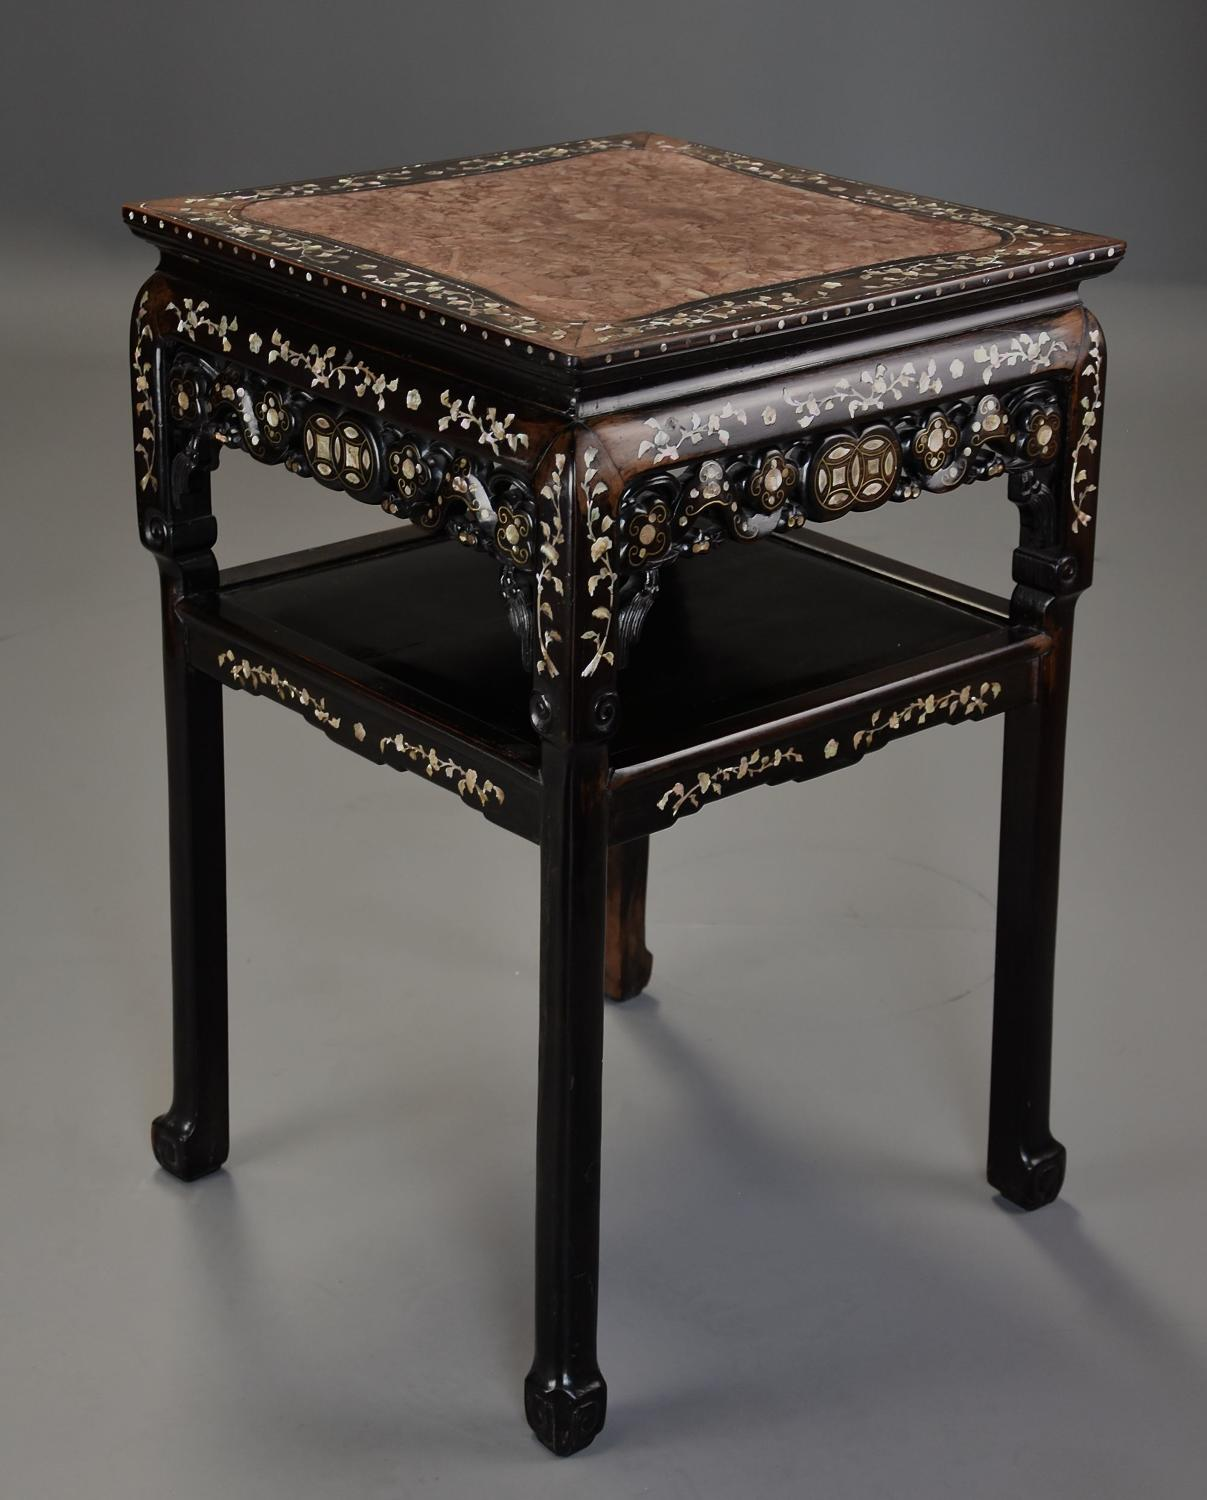 Highly decorative 19thc Chinese hardwood & mother of pearl pot stand